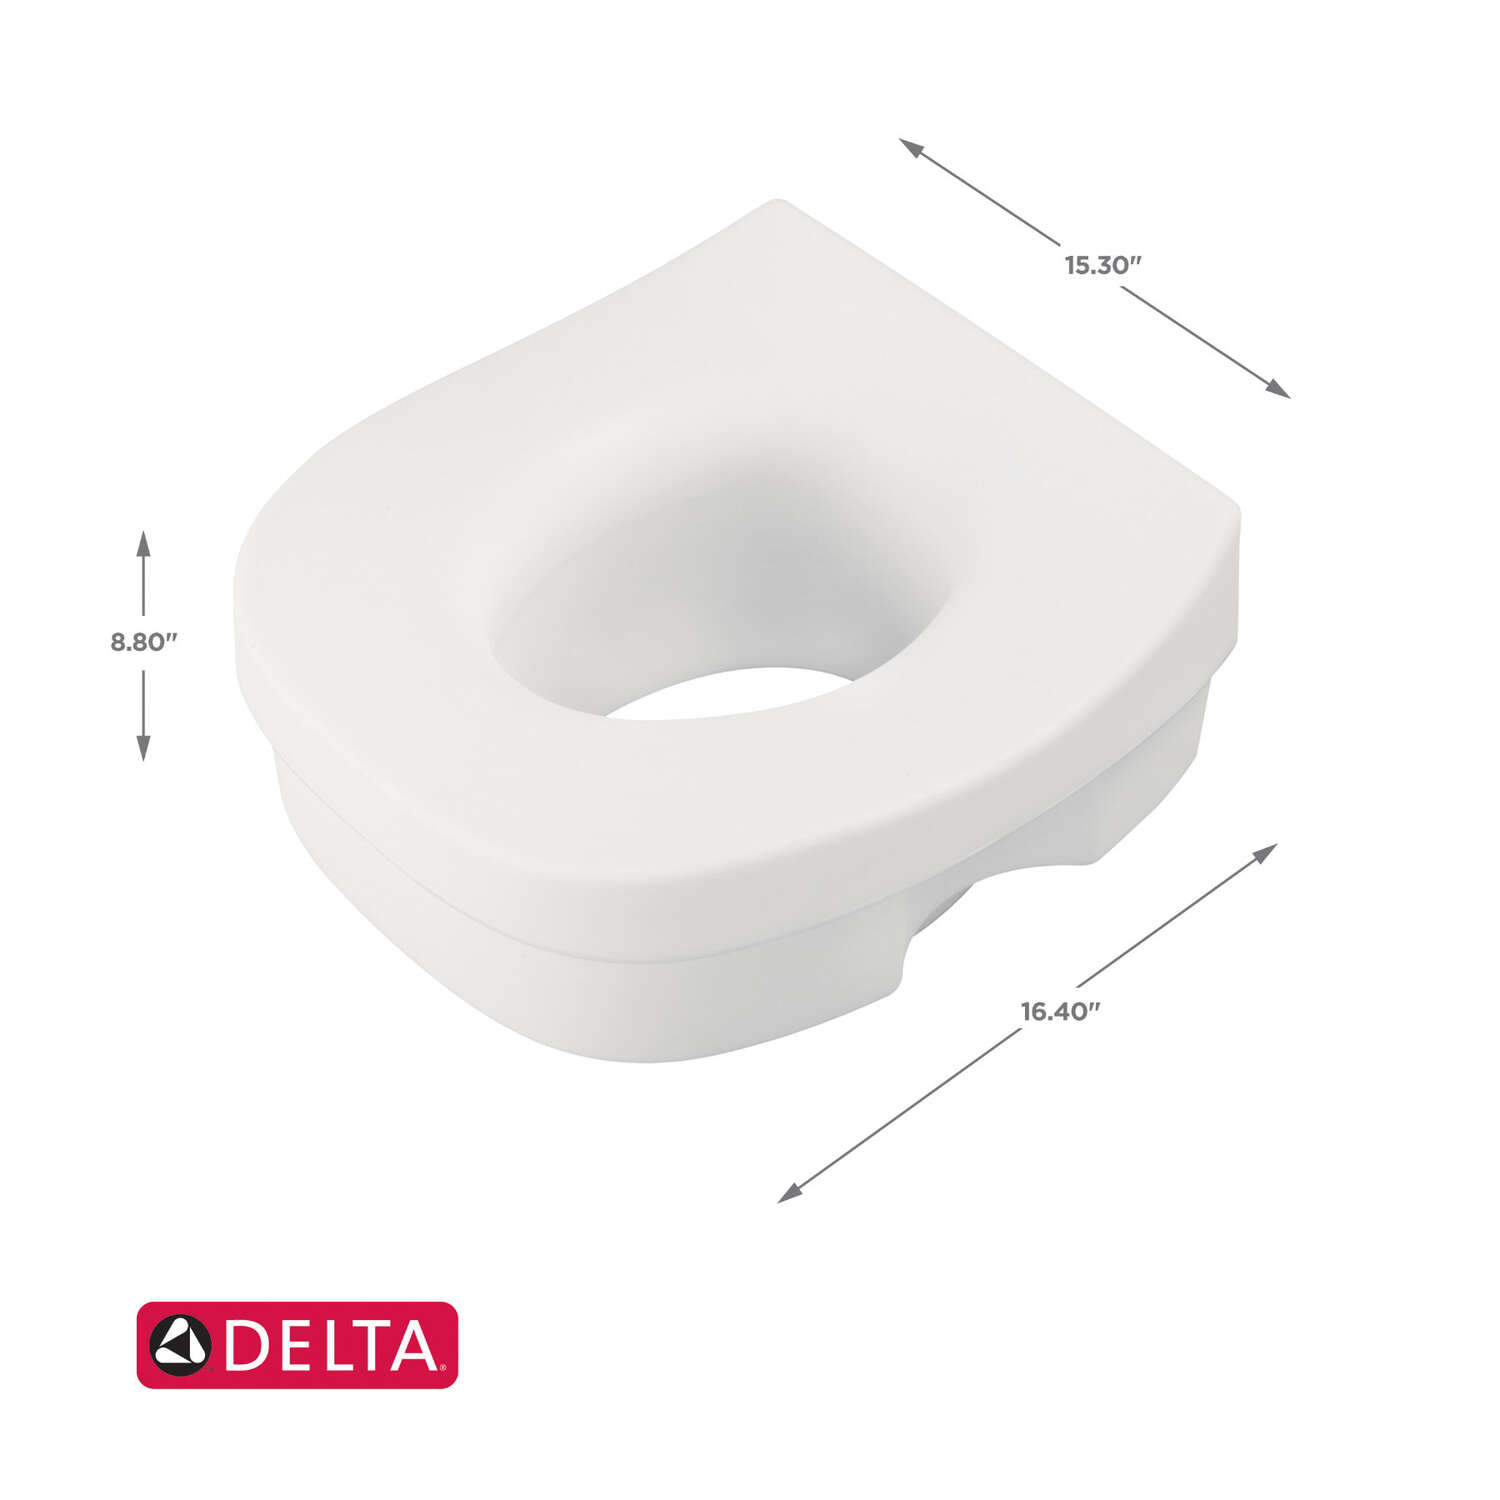 Franklin Brass  White  Elevated Toilet Seat  Plastic  5 in. H x 11-3/4 in. L